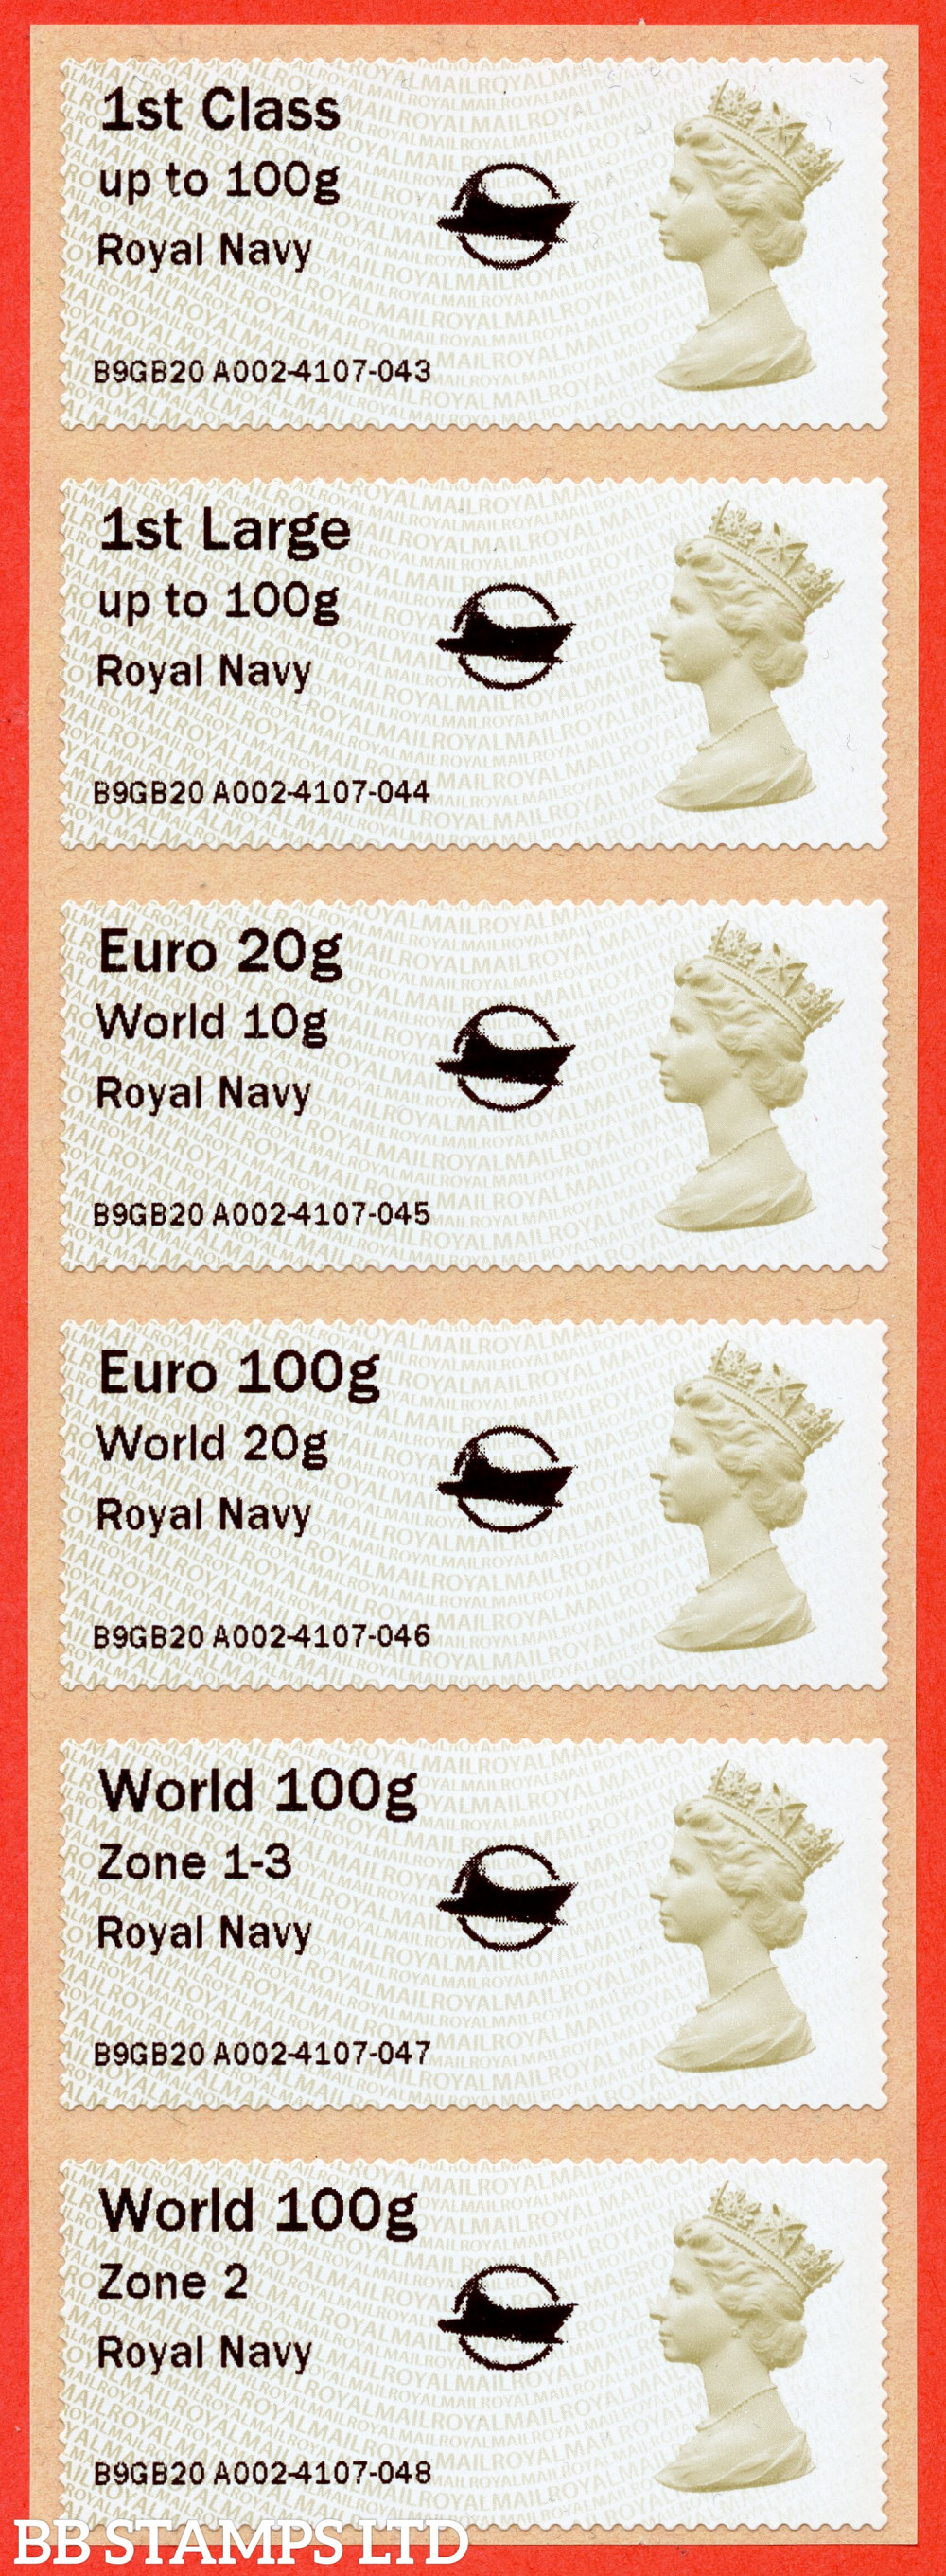 Machin: Royal Navy + small Circle Logo, set of 6 (TIIIA) with 01/09/20 new overseas stamps: 1st/1stL/Euro 20g World 10g, and 3 new values: Euro 100g World 20g, World 100g Zone 1-3 [with hyphen] and World Zone 2: with MA15 year code (BK30 P15)